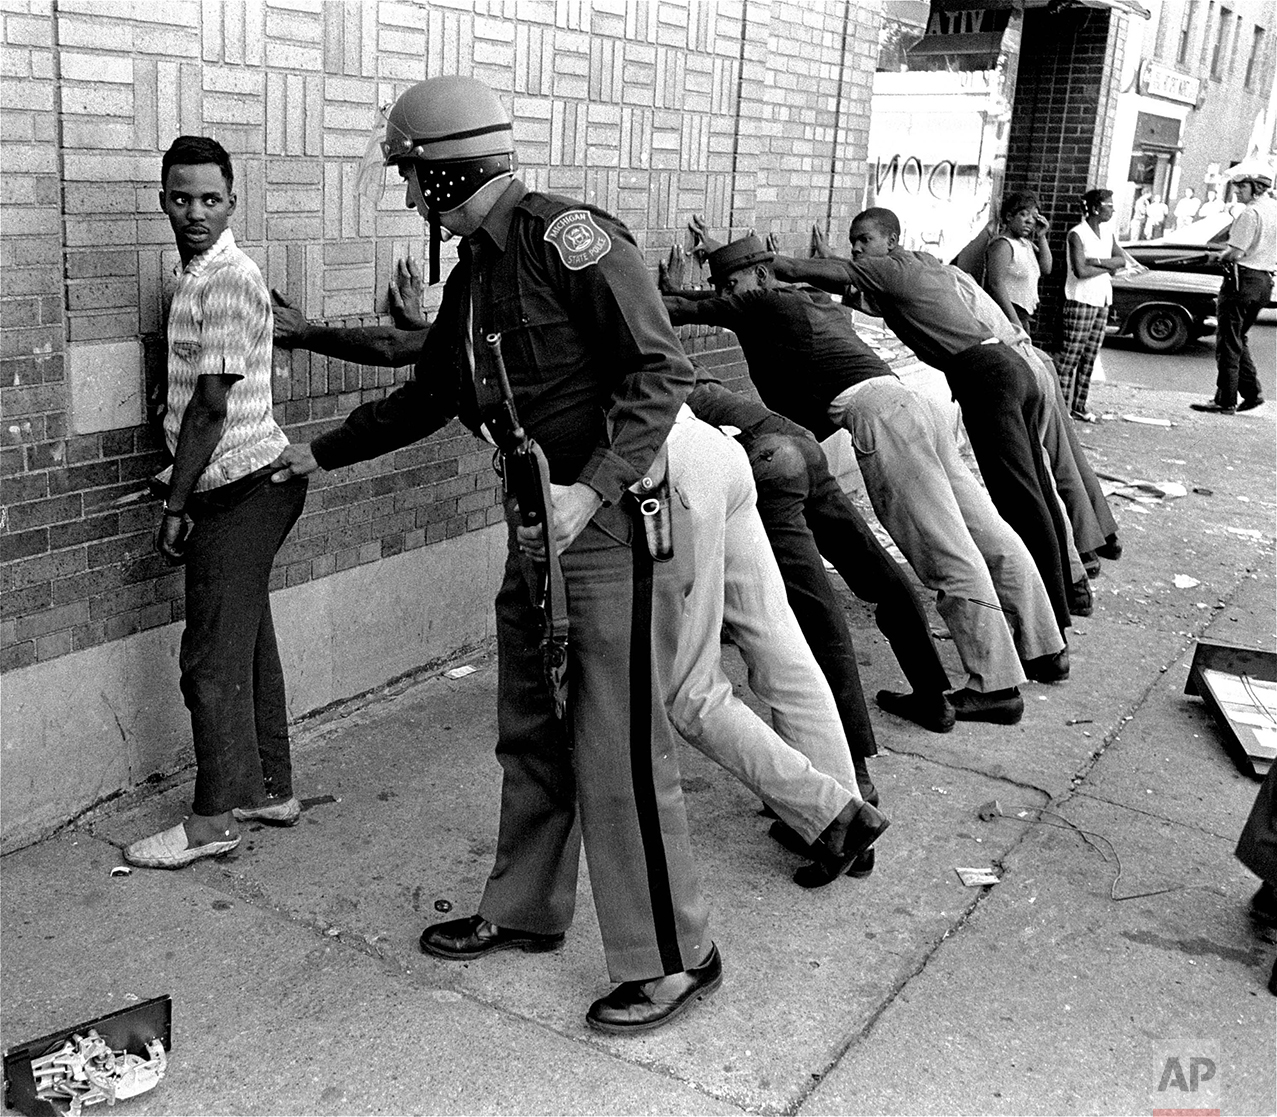 A Michigan State officer searches a youth on Detroit's 12th Street, July 24, 1967, where looting was still in progress after the city's rioting. His companions lean against the wall waiting their turn. There were many arrests and at least five persons were dead. (AP Photo)